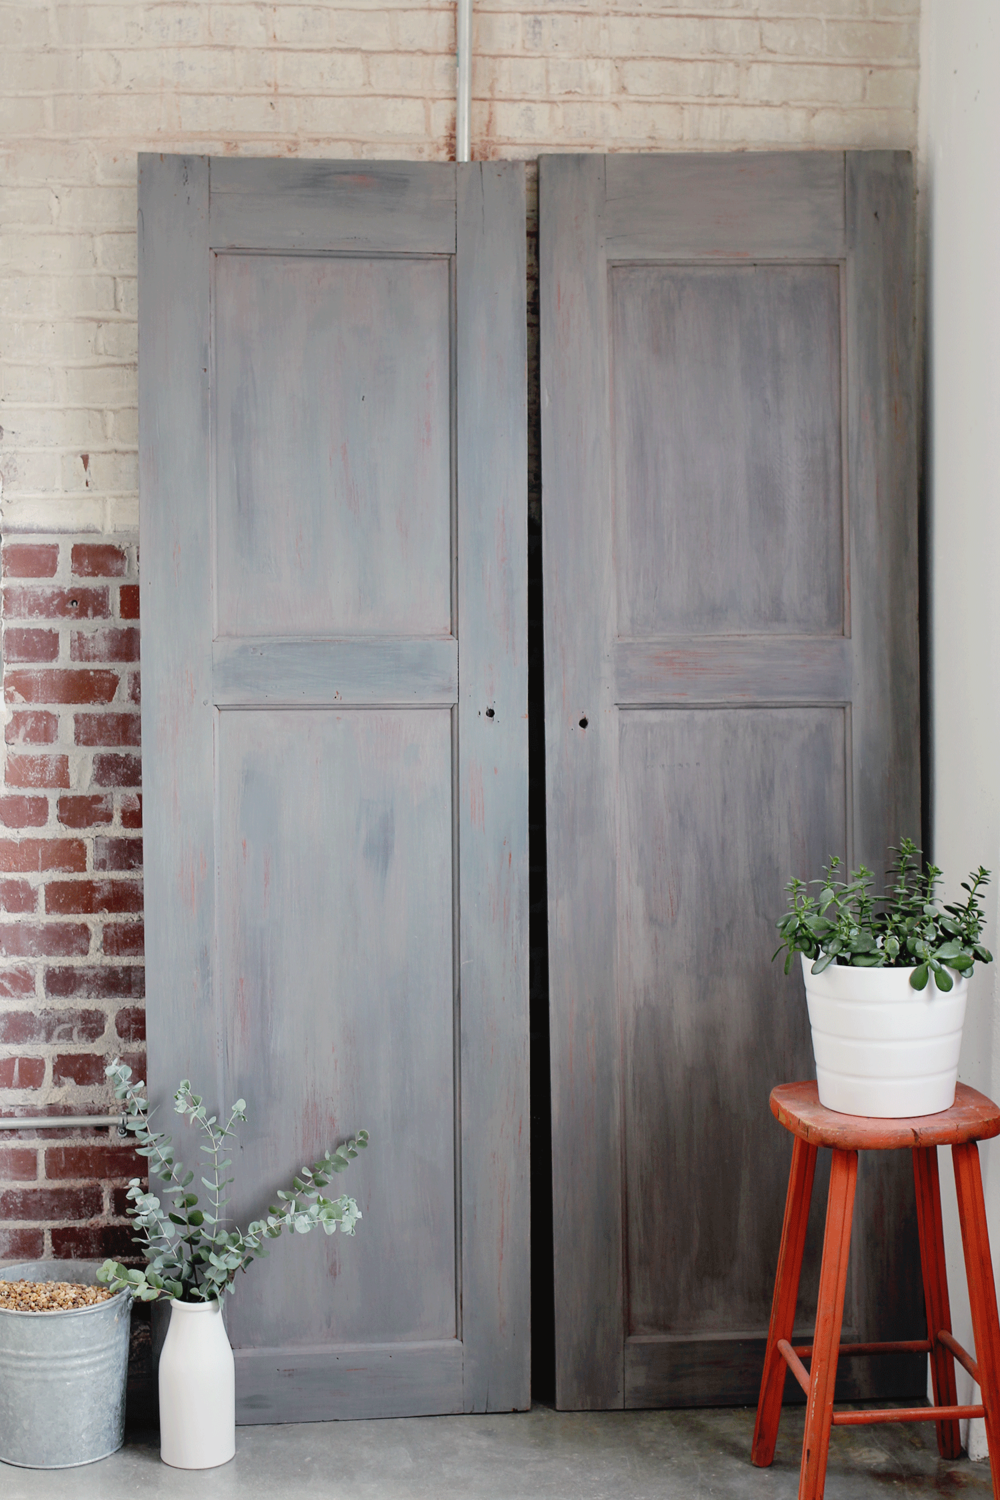 Creating The Look Of Vintage Gray Barn Wood Doors U2014 A Simpler Design: A Hub  For All Things Creative. STYLIST | PHOTOGRAPHY | GRAPHIC DESIGN | HOME DECOR